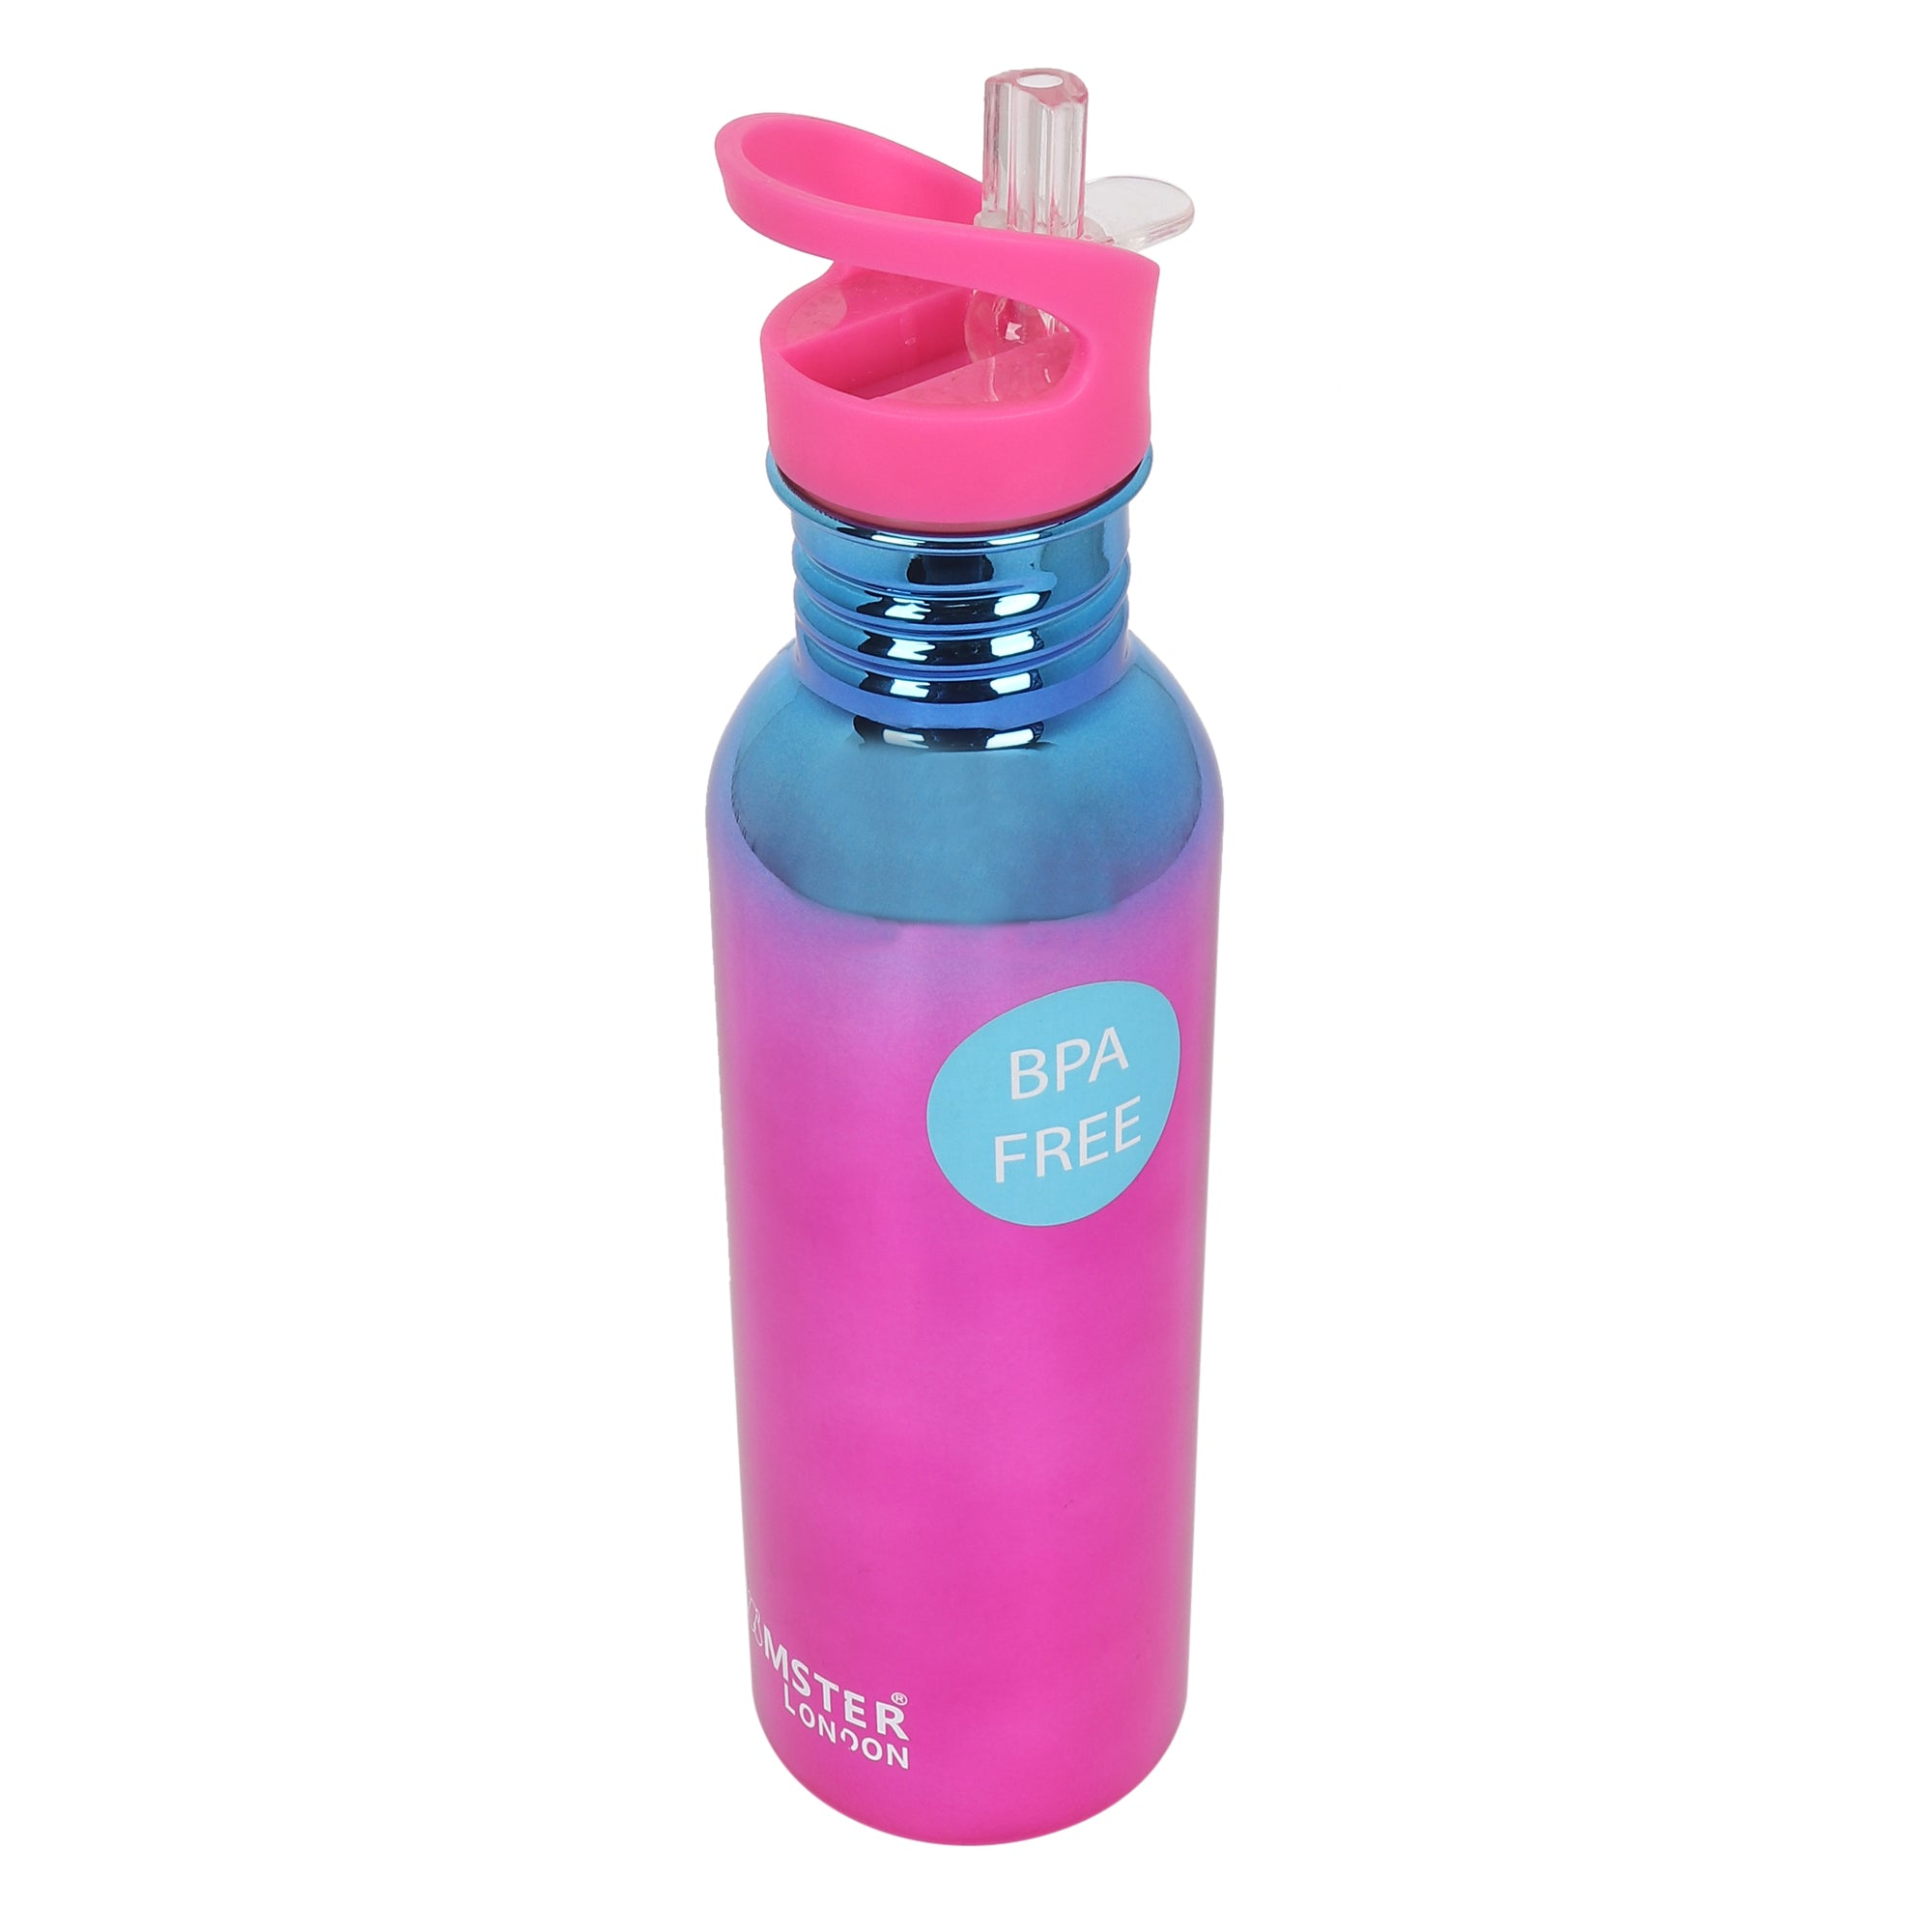 Holo Large Sipper Metal Bottle Pink